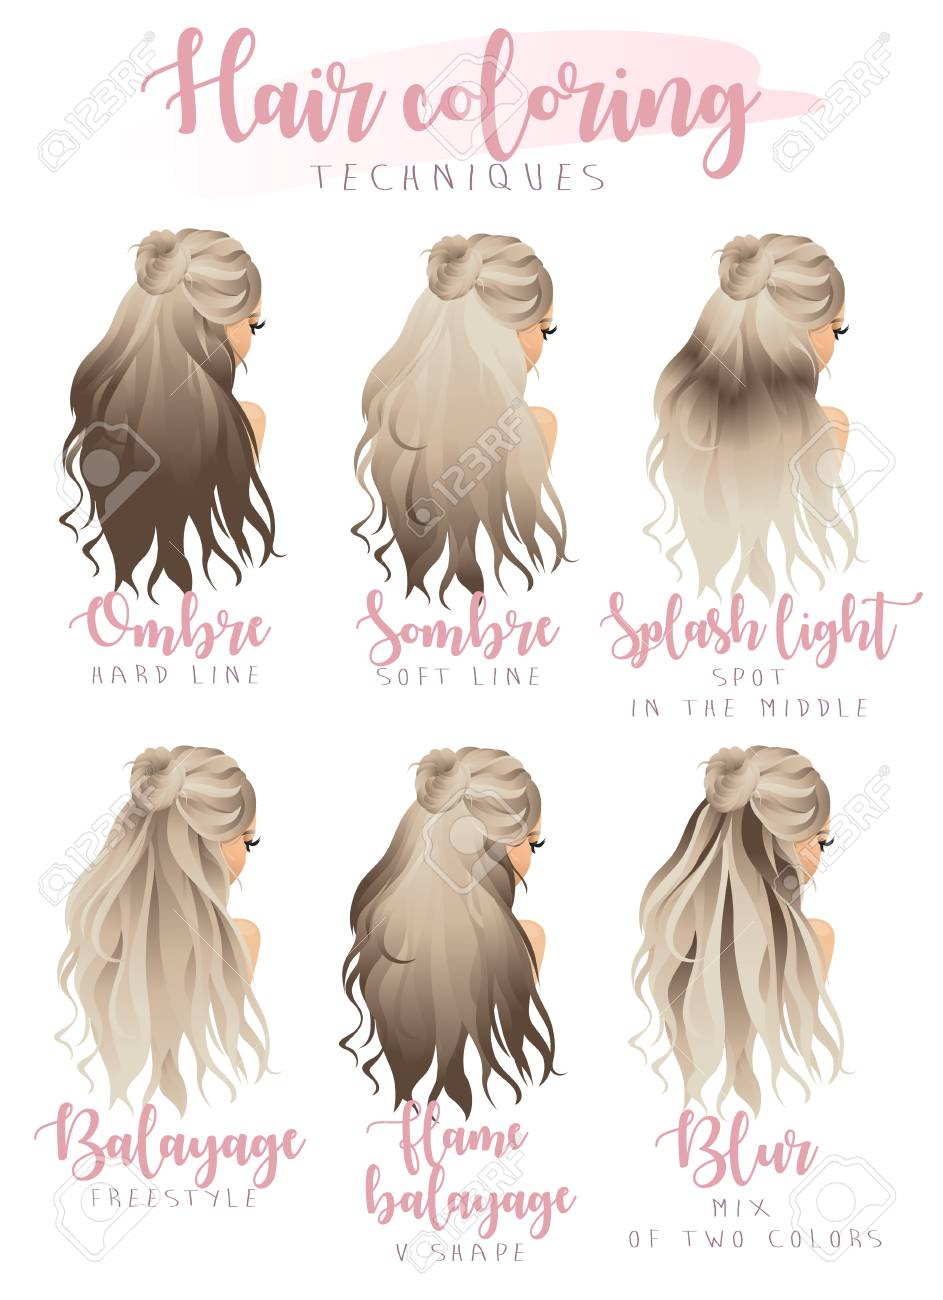 What Is Balayage Hair? - Balayage Highlights vs. Ombre